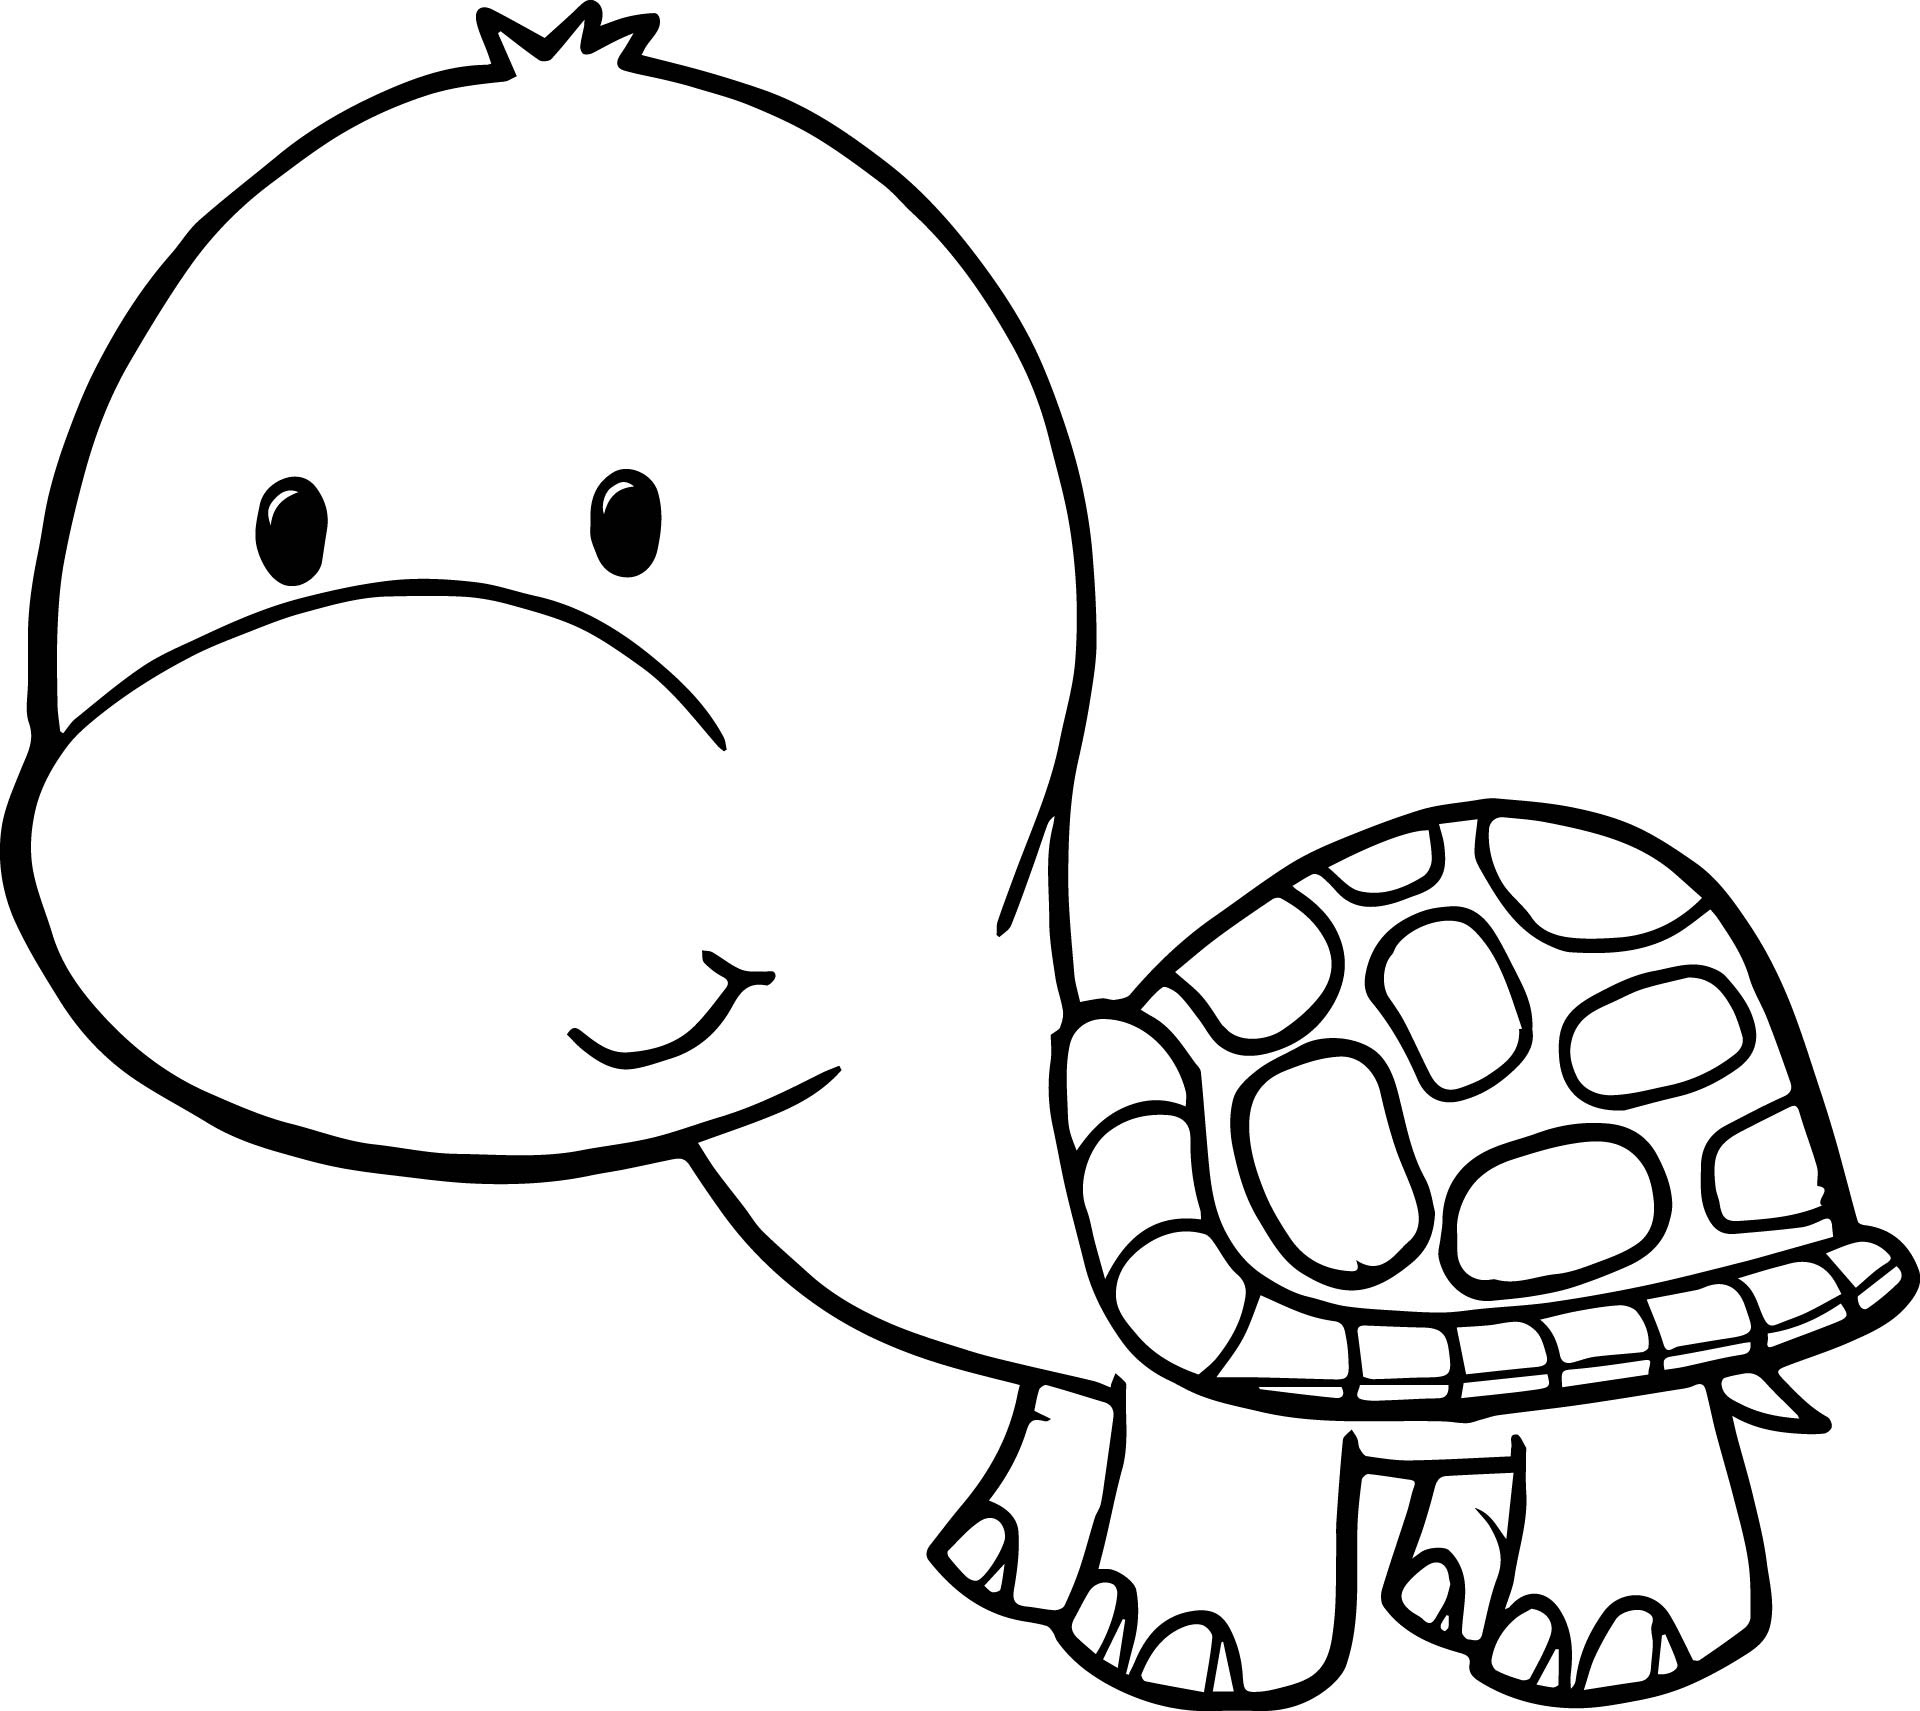 7500 Top Cartoon Turtle Coloring Pages Pictures